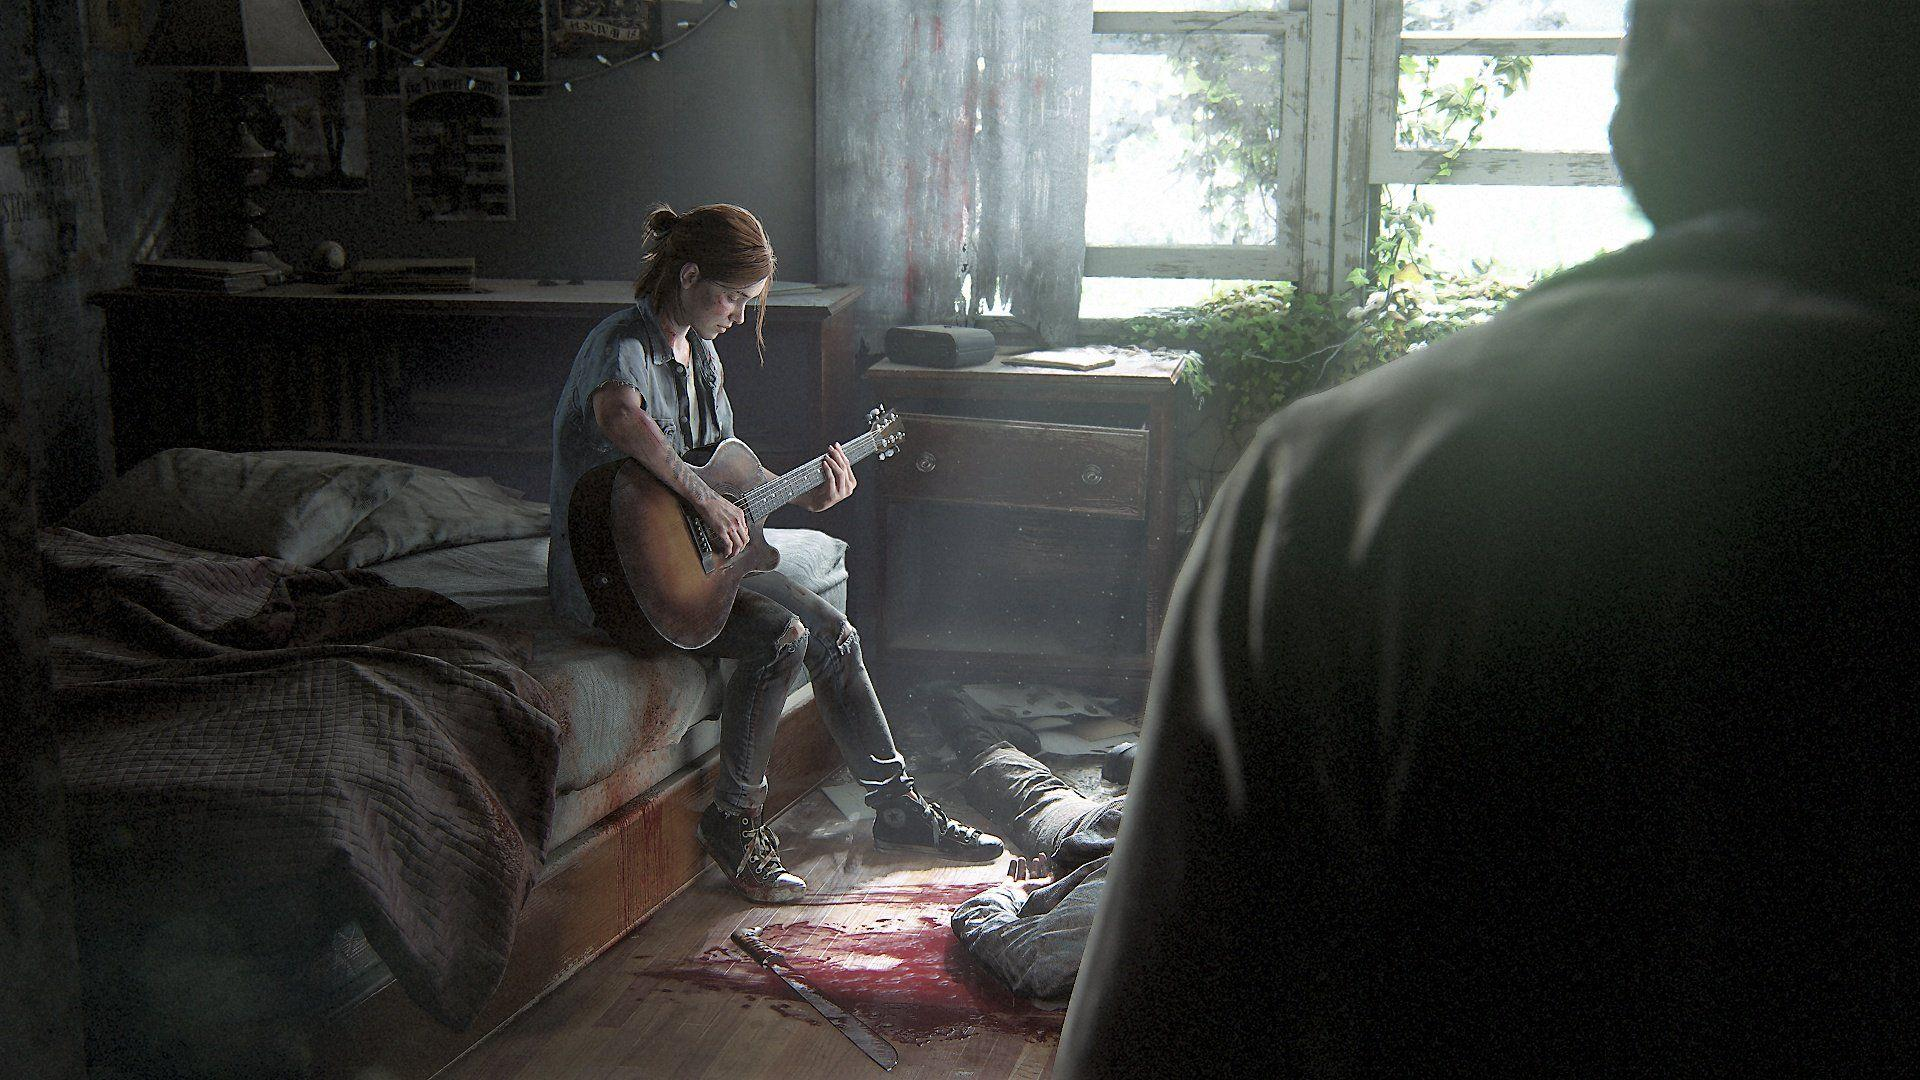 The Last Of Us 2 Wallpapers - Wallpaper Cave